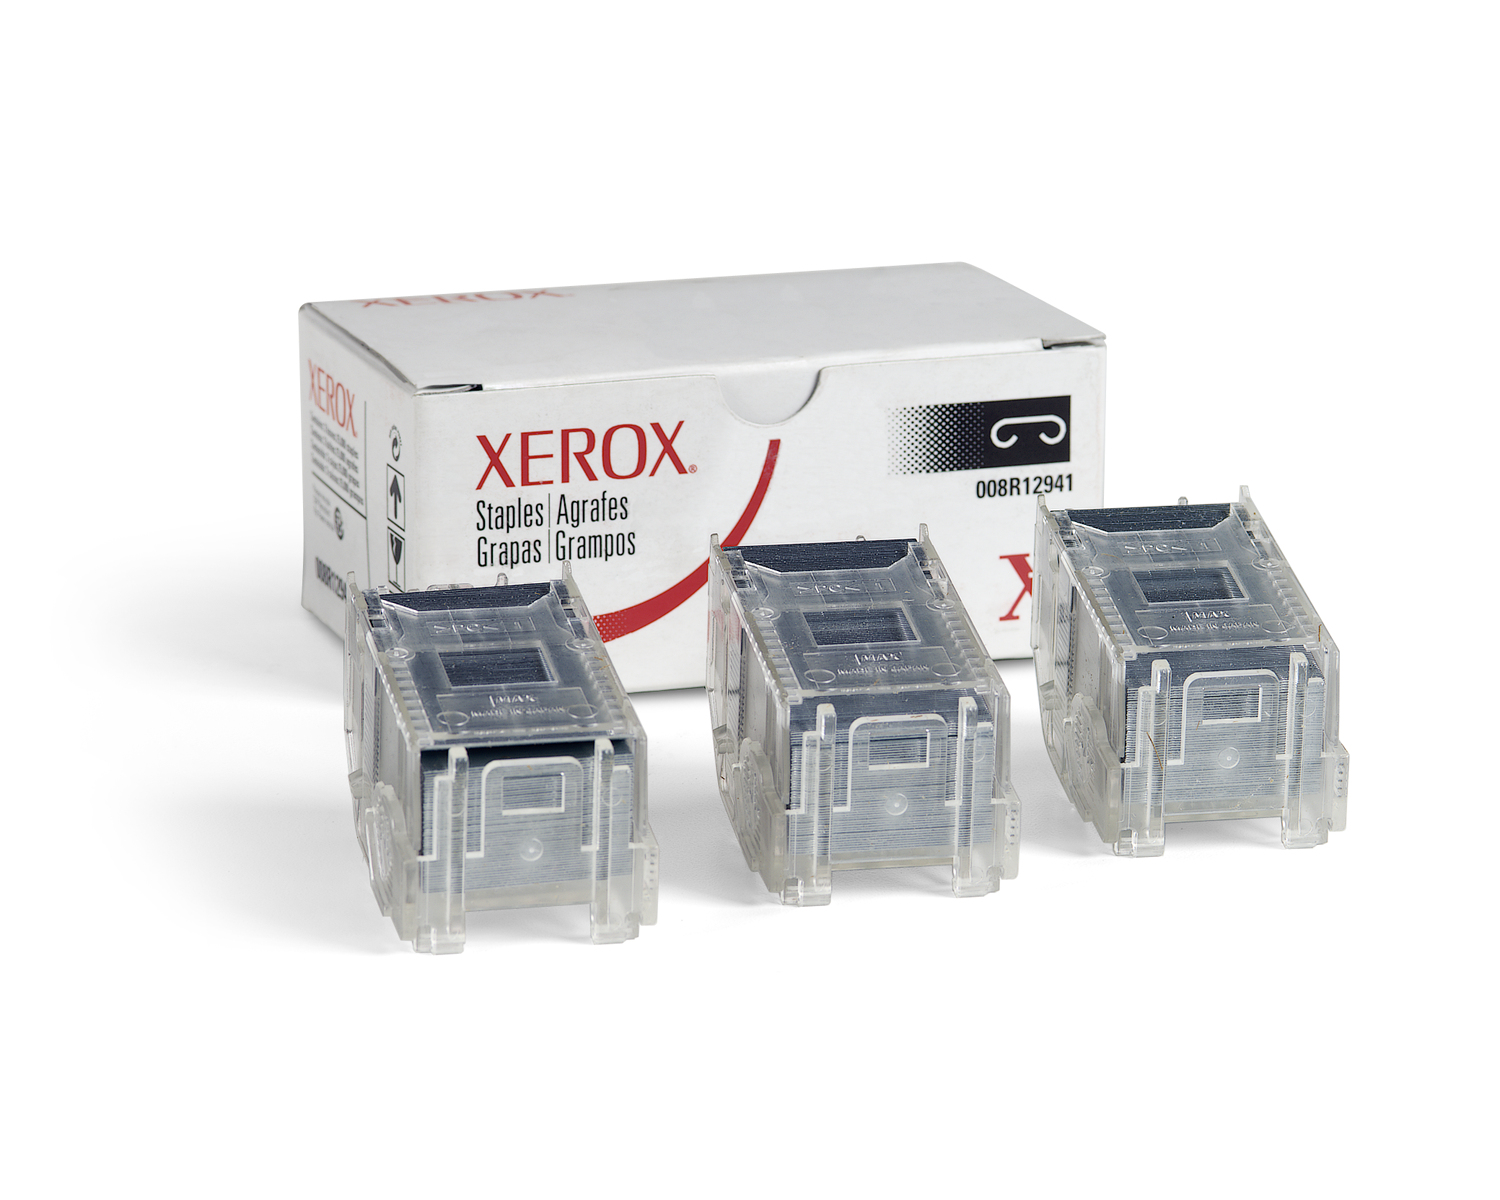 Xerox Nietjespakket voor Advanced en Professional Finishers en losse nieteenheid